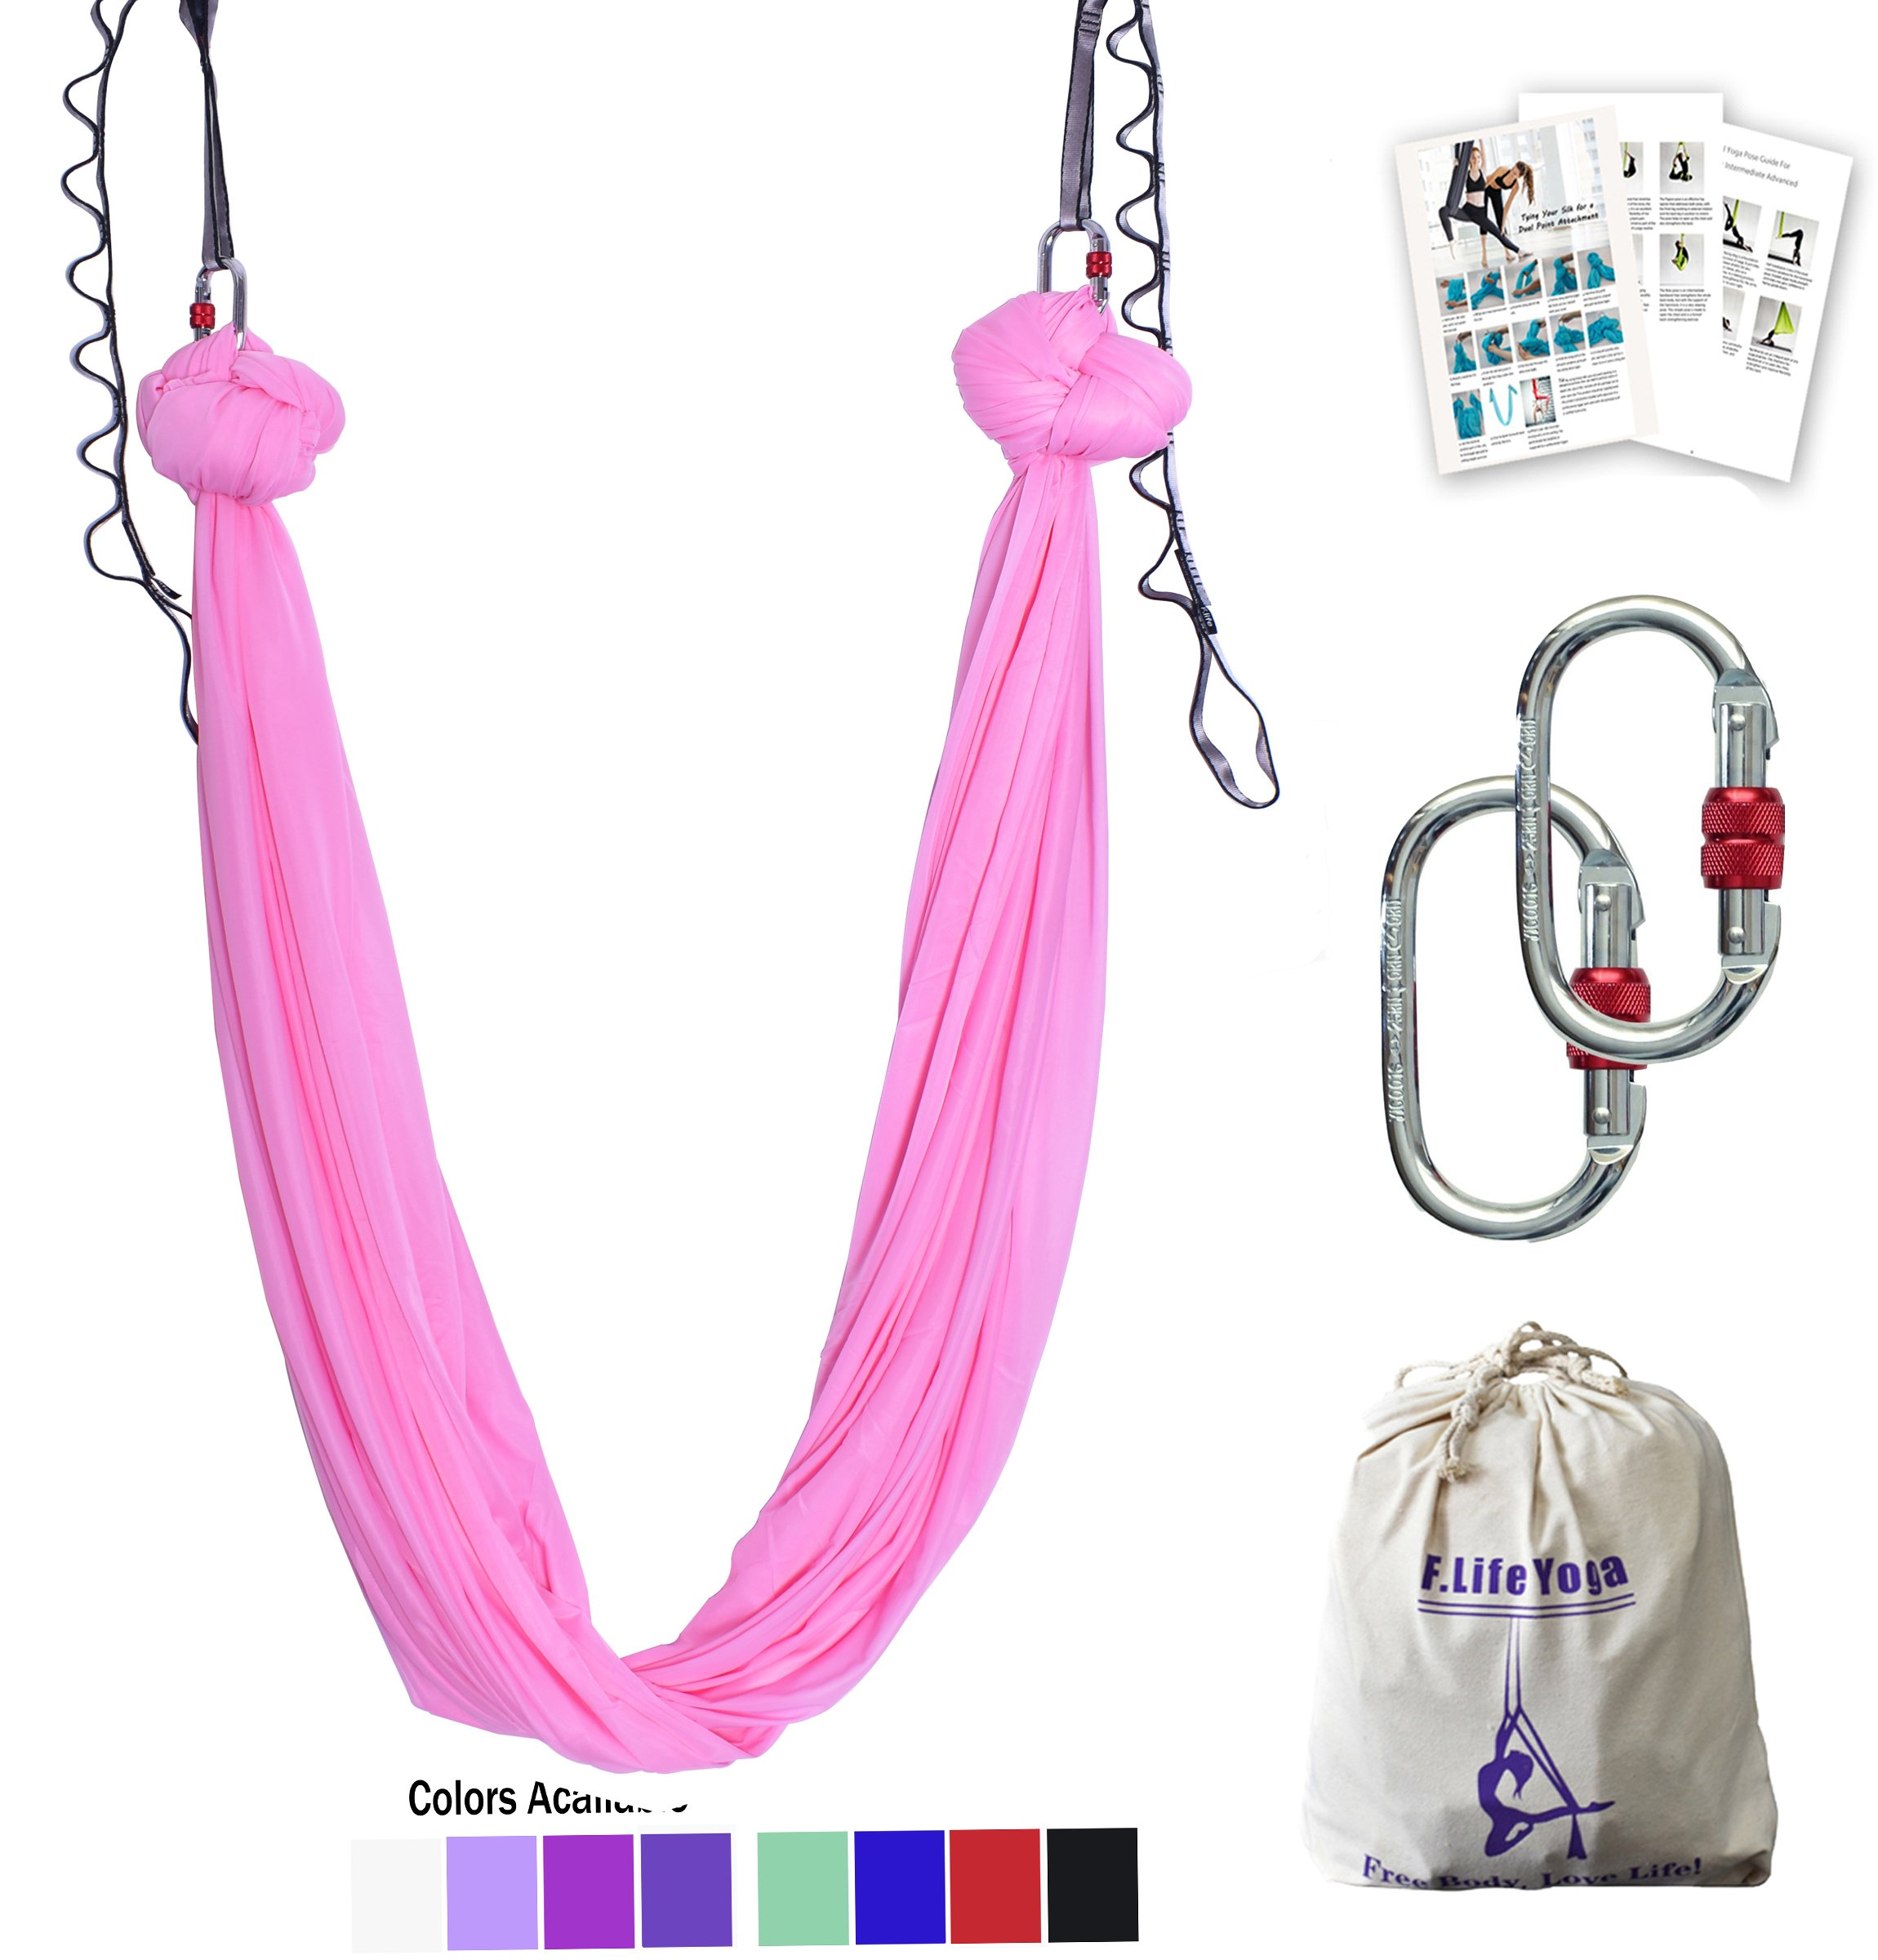 Aerial Yoga Hammock 5.5 Yards Premium Aerial Silk Fabric Yoga Swing for Antigravity Yoga Inversion Include Daisy Chain,Carabiner and Pose Guide (Cherry Pink)